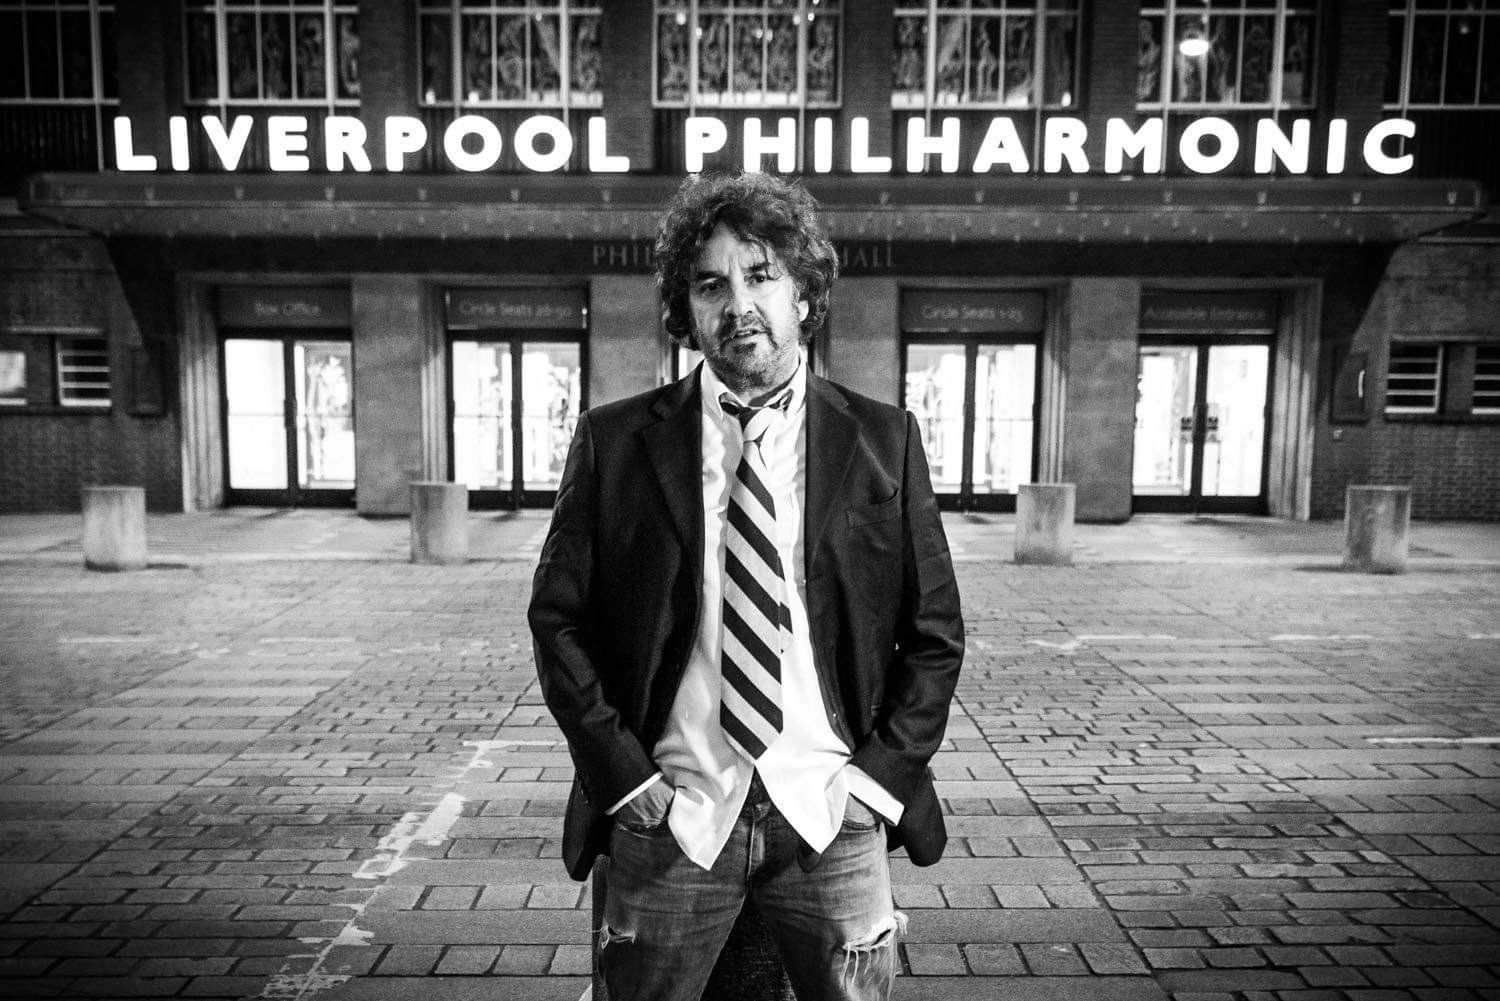 The famous IAN PROWSE & AMSTERDAM Christmas show is given green light